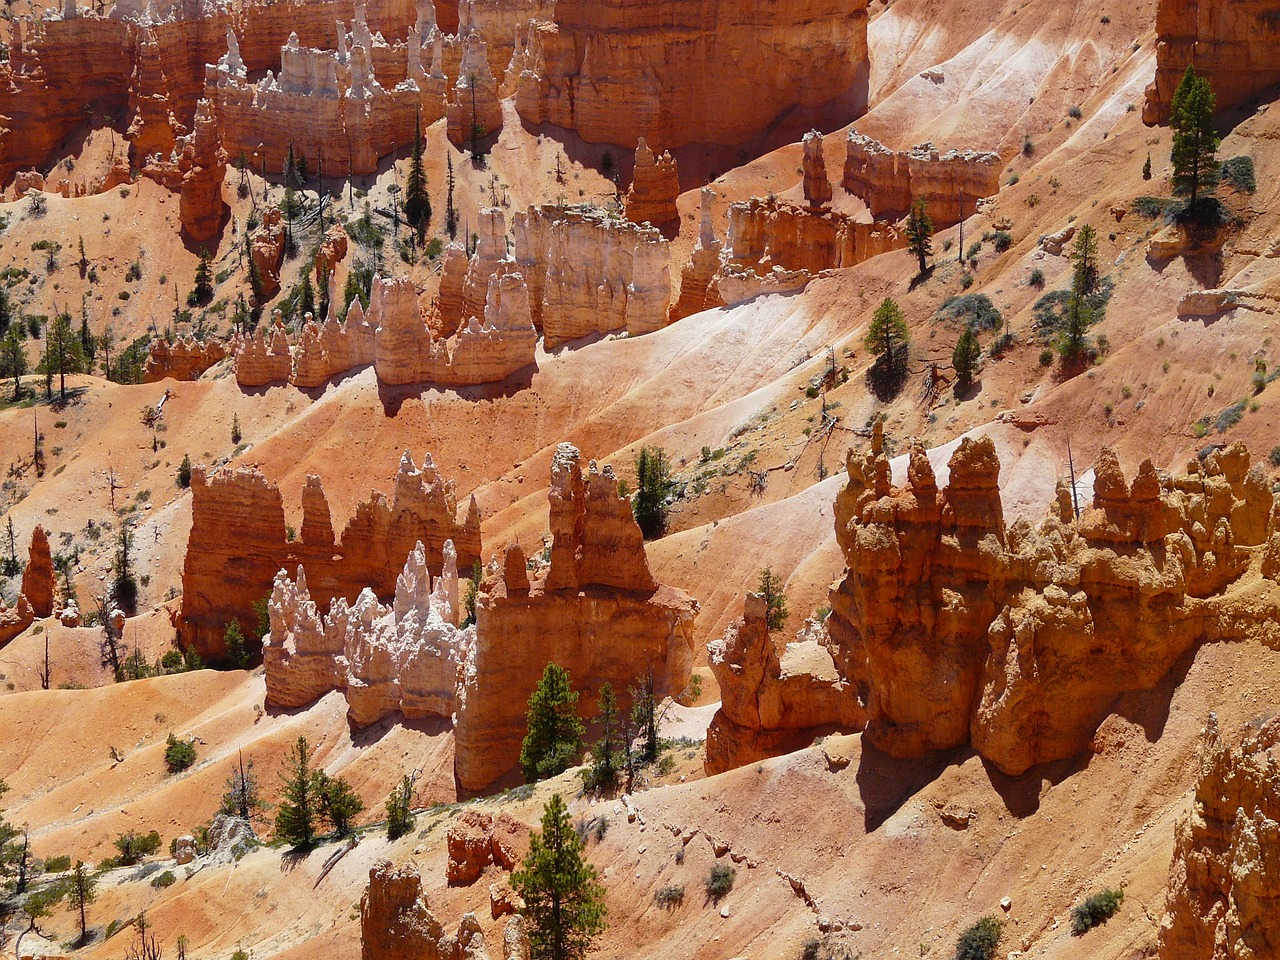 bryce canyon,bryce canyon national park,utah,united states,usa,gorge,sand stone,pyramid rock,hoodoo,paunsaugunt plateau,paunsaugunt,erosion,erosion forms,landscape,nature,red,national park,rock,free pictures, free photos, free images, royalty free, free illustrations, public domain